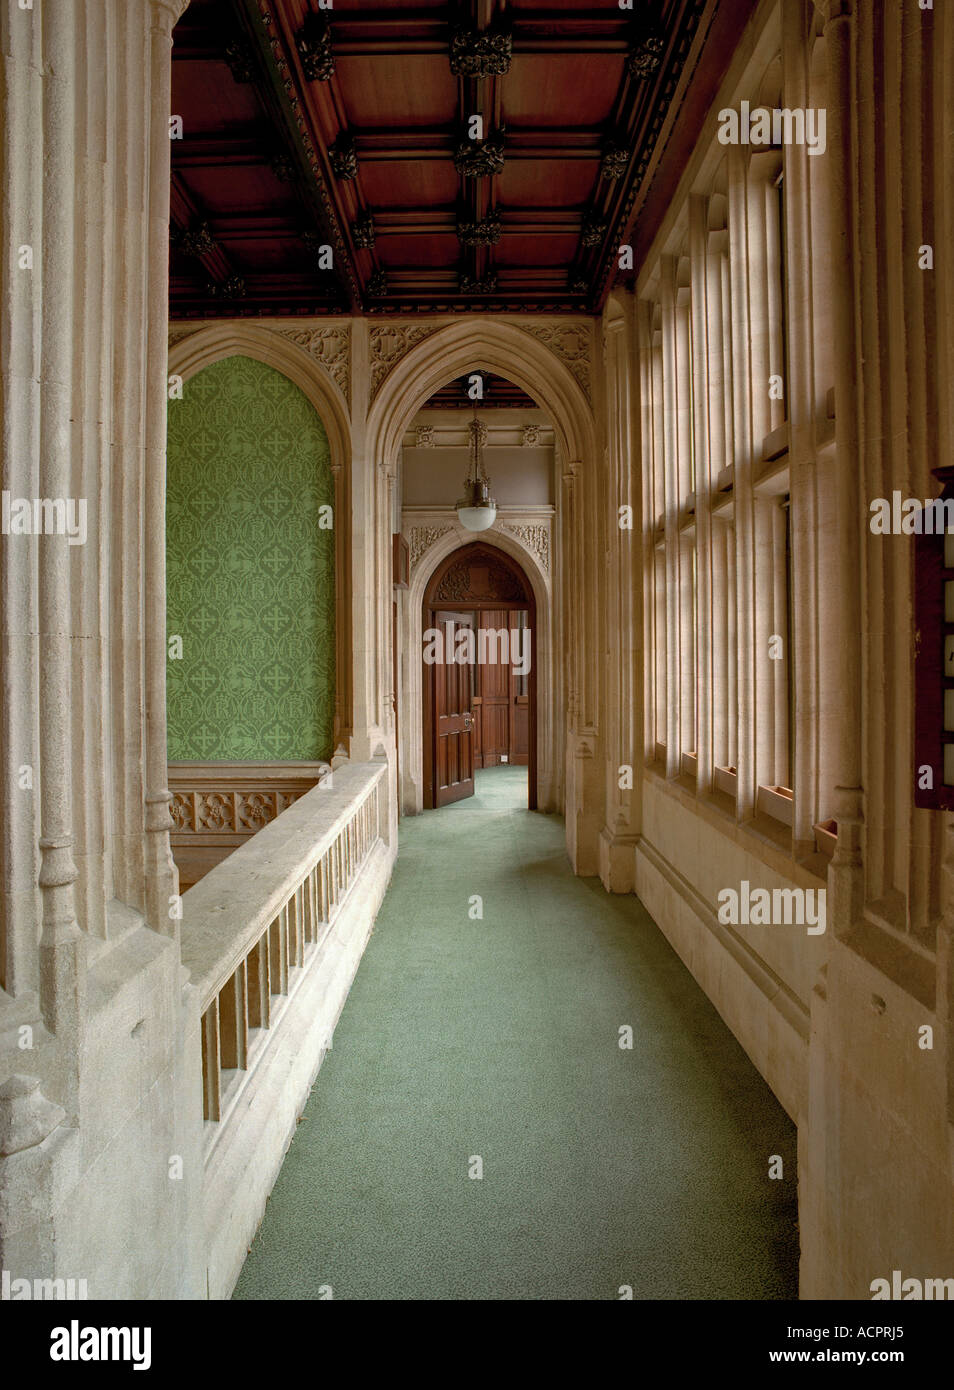 Refurbished Offices At The Palace Of Westminster The